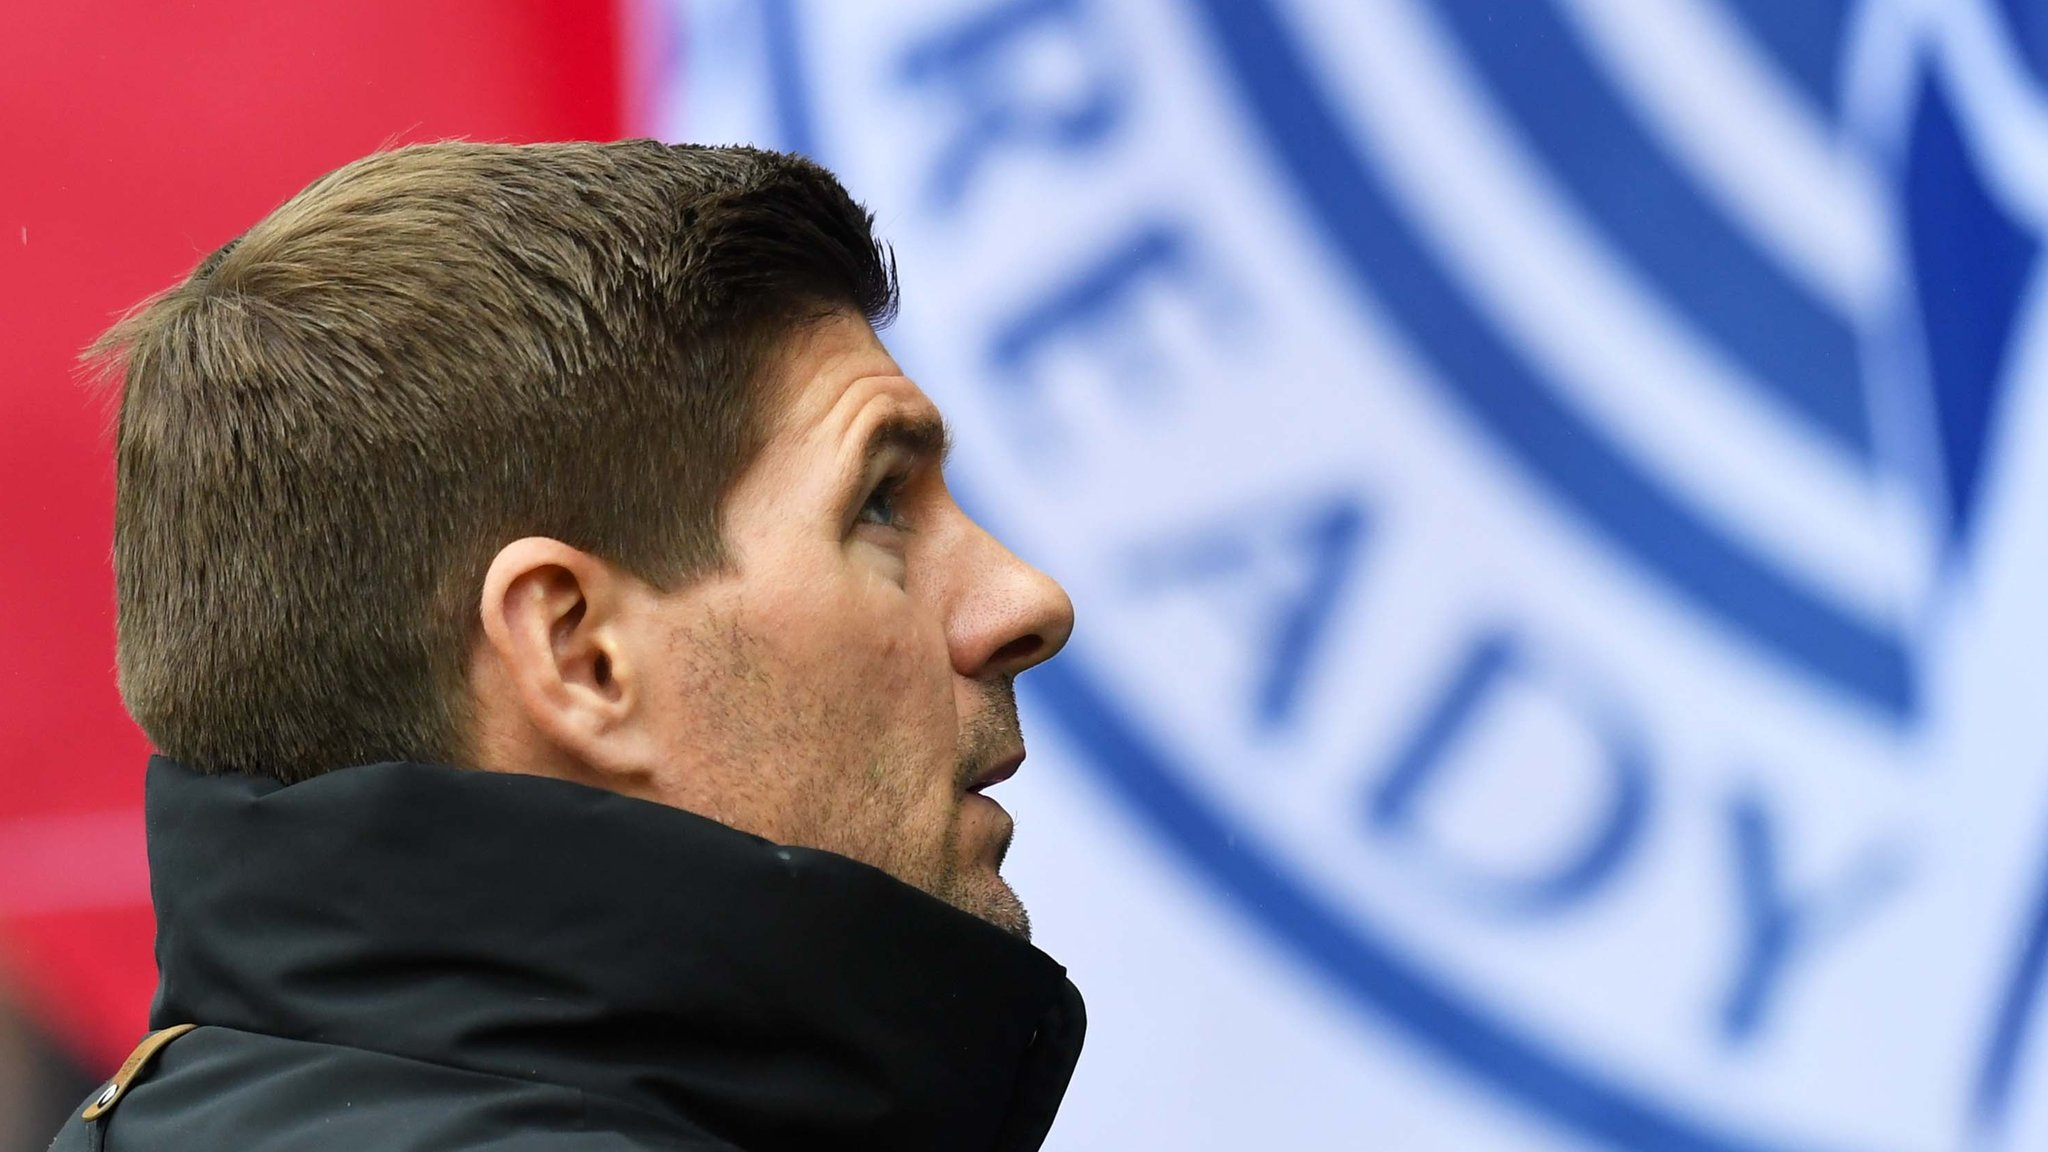 Progress, pressure & the long road ahead - Steven Gerrard's first year at Rangers